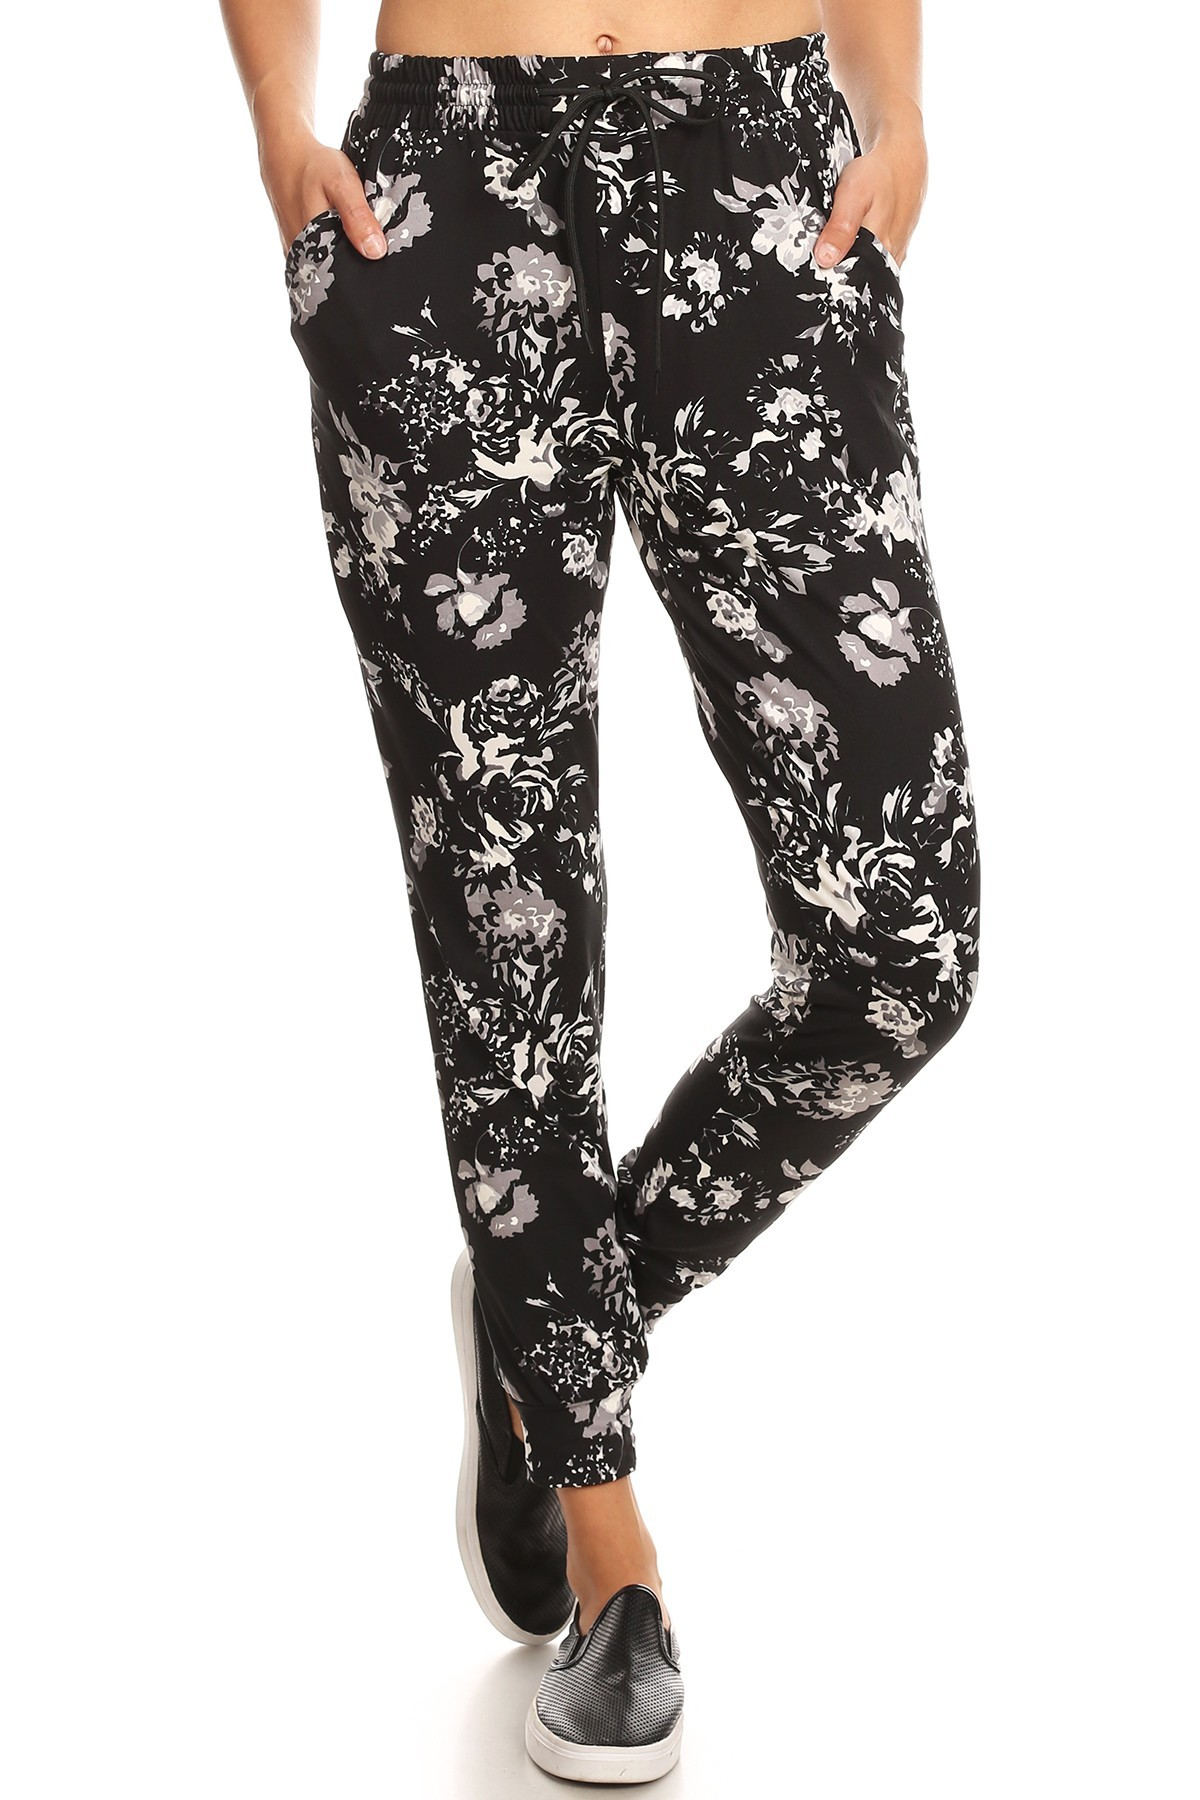 BLACK/WHITE FLORAL PRINT JOGGER WITH SHOE LACE TIE#8TRK36-03